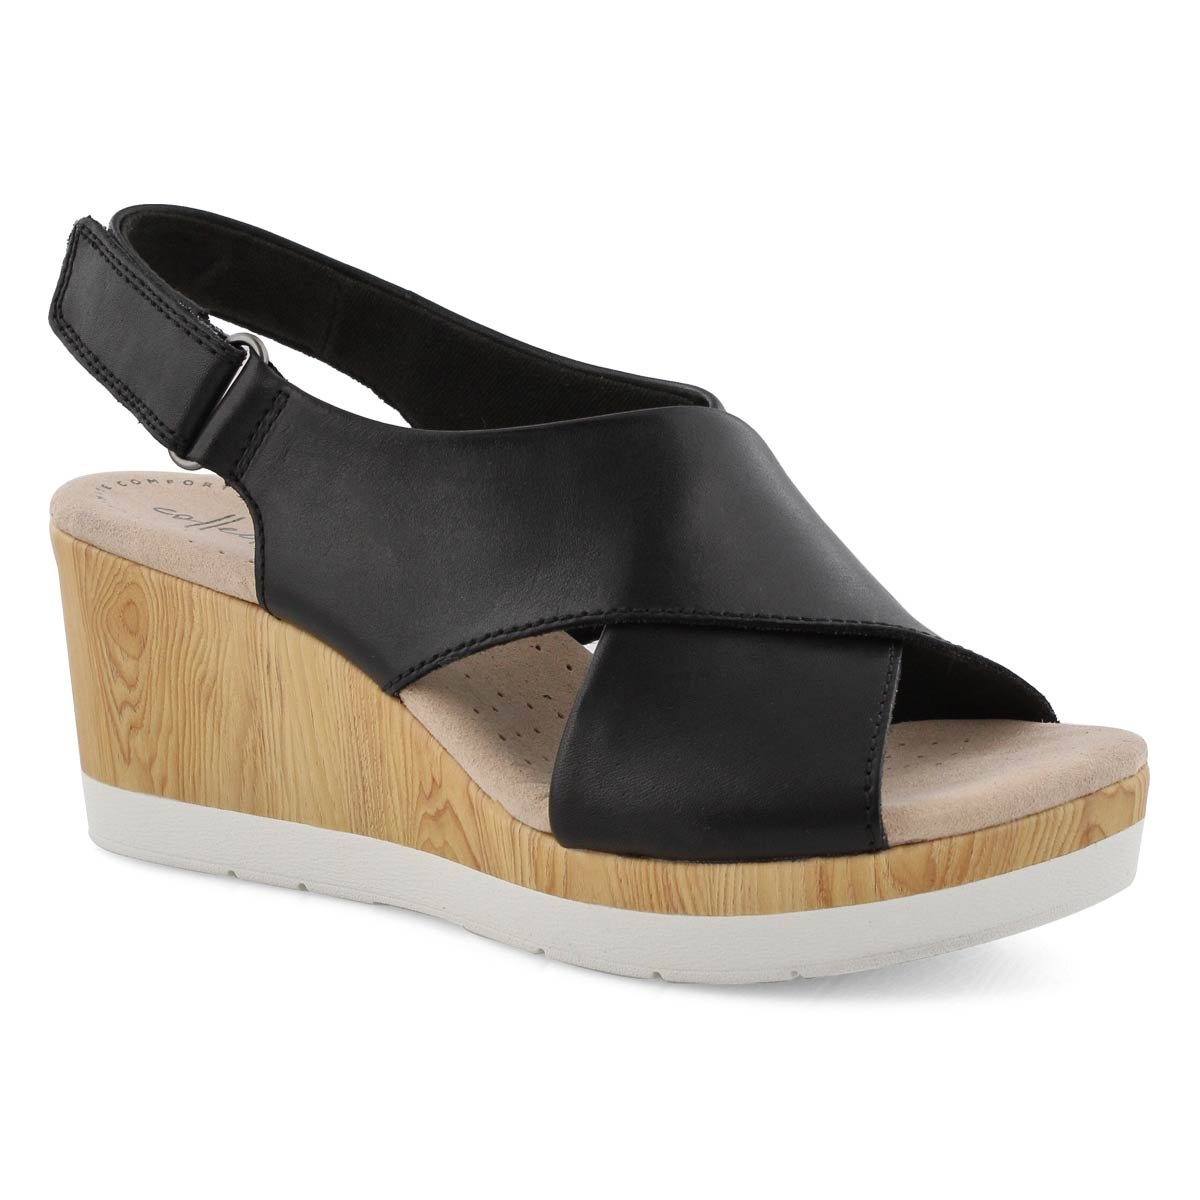 Women's Shoes Ladies Clarks Stylish Wedge Heeled Sandals